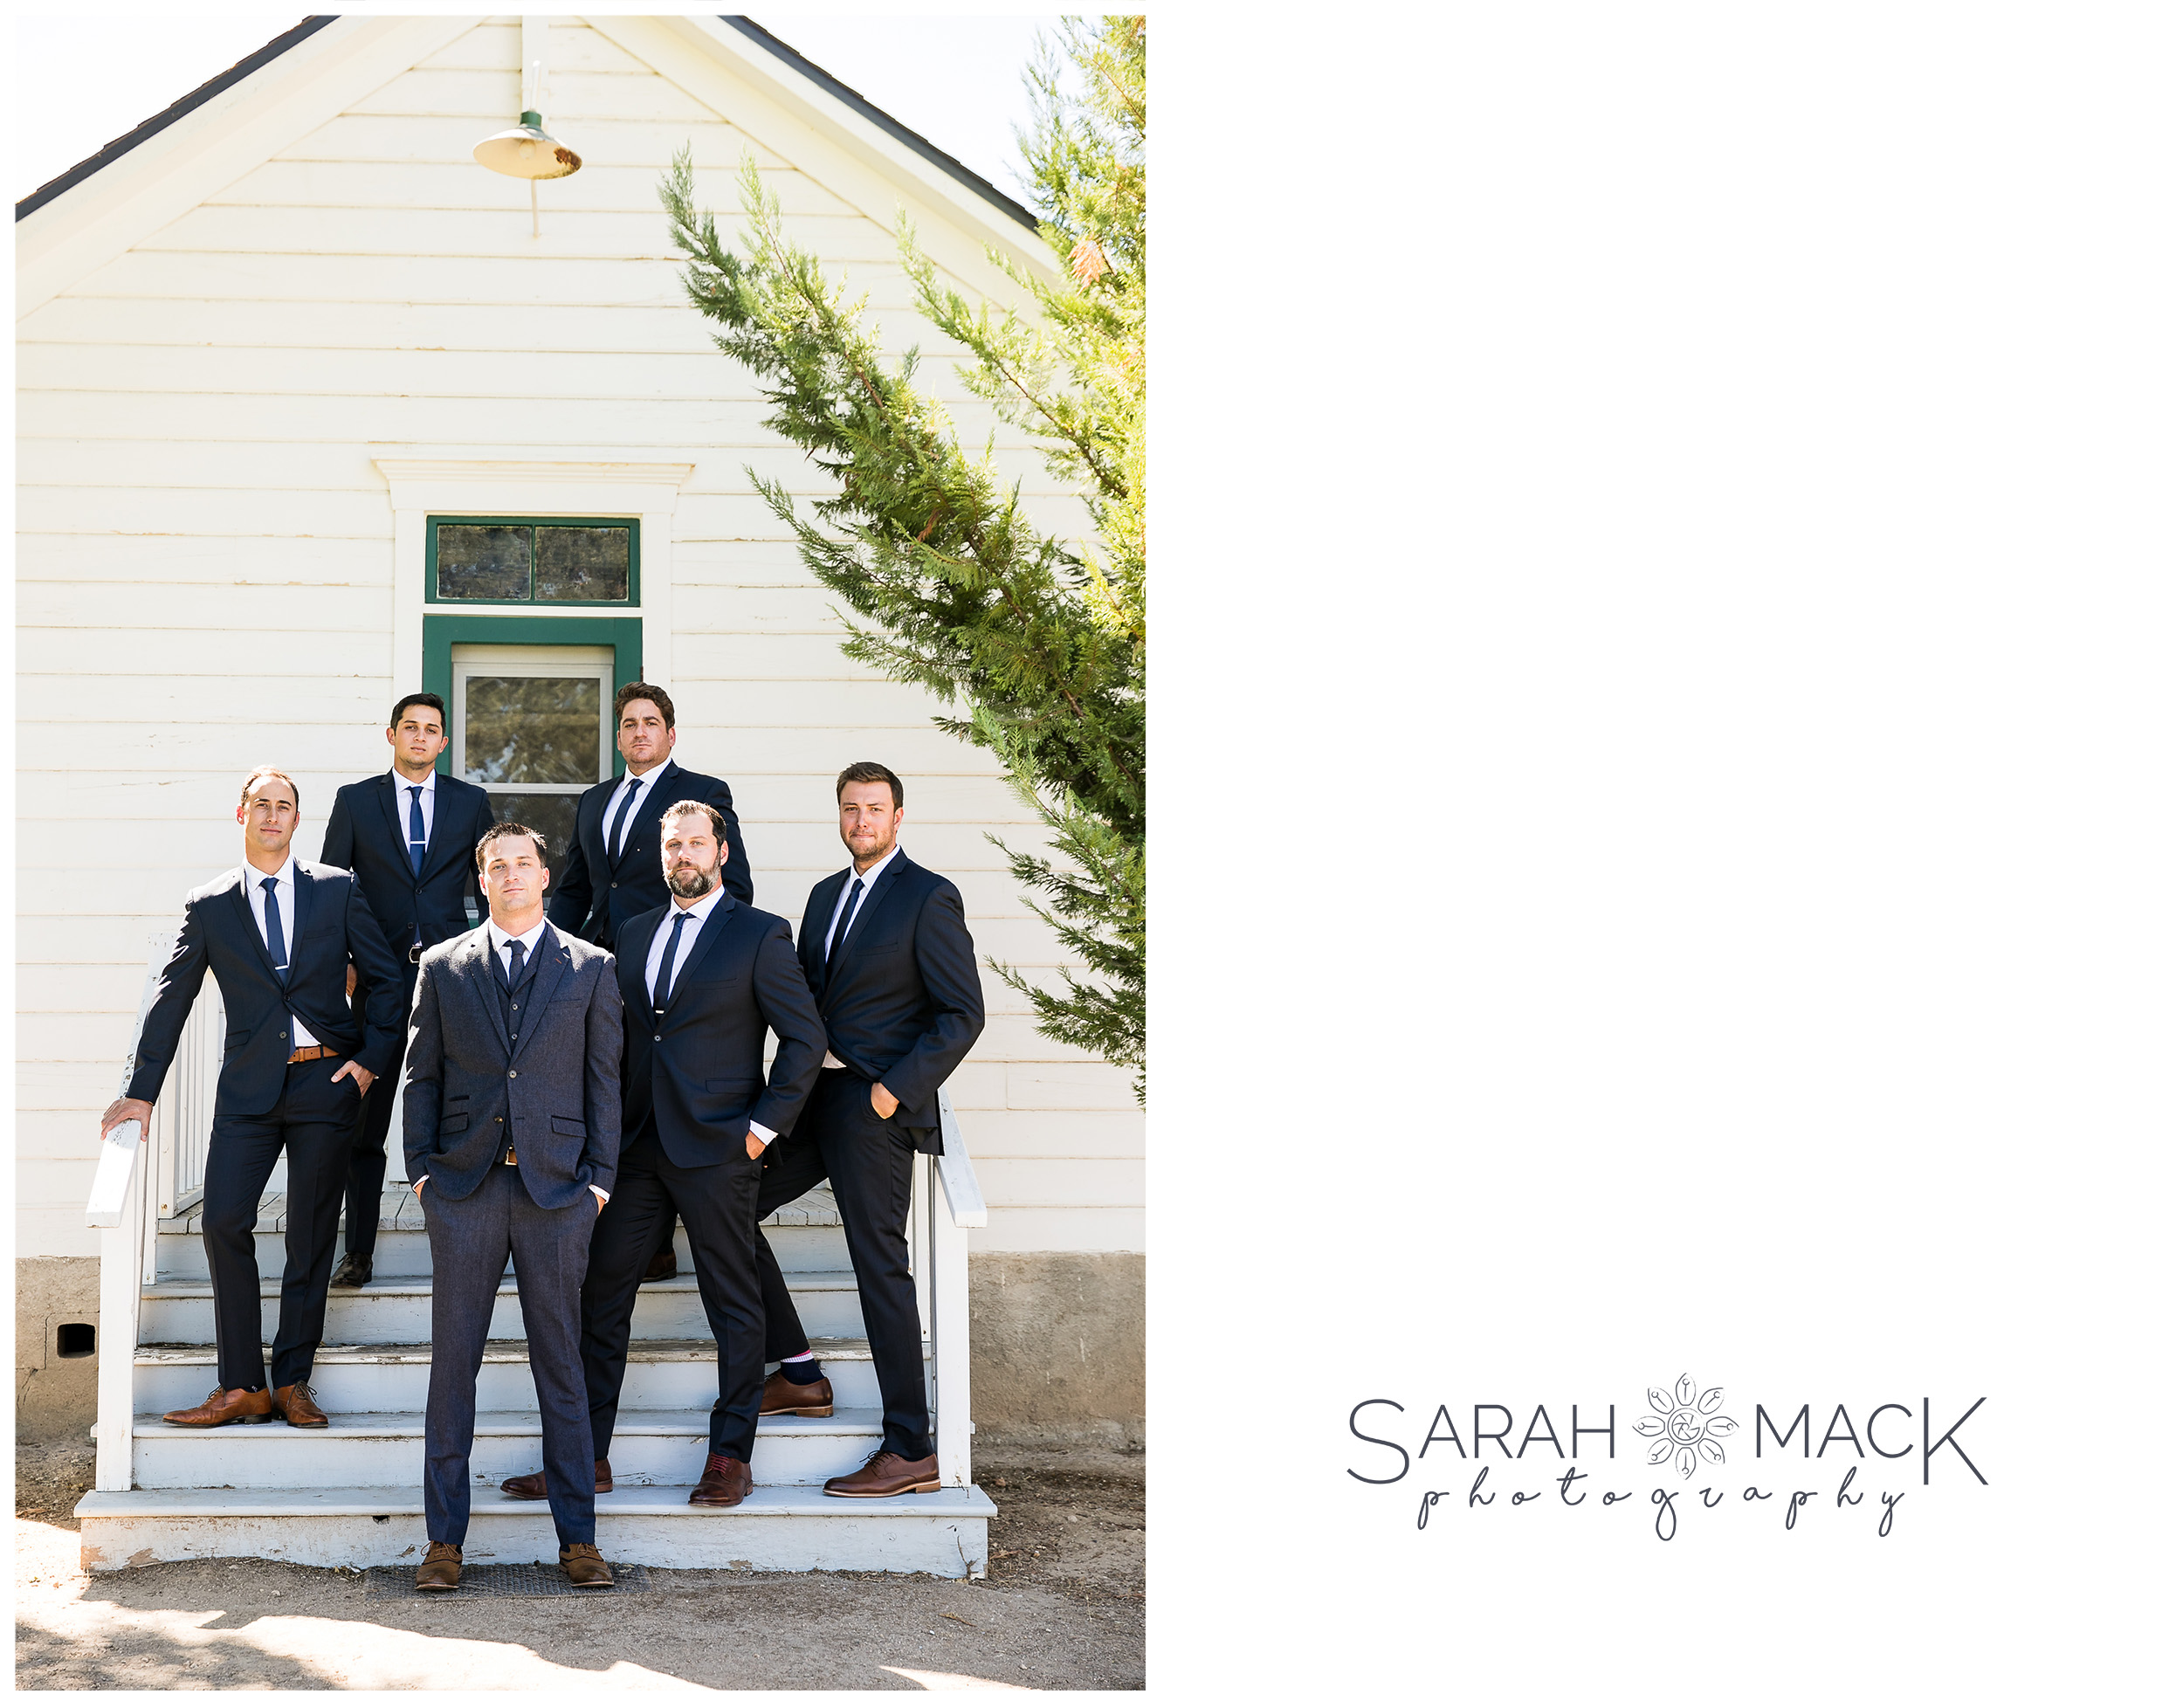 MA-Chandler-Ranch-Paso-Robles-Wedding-Photography-31.jpg